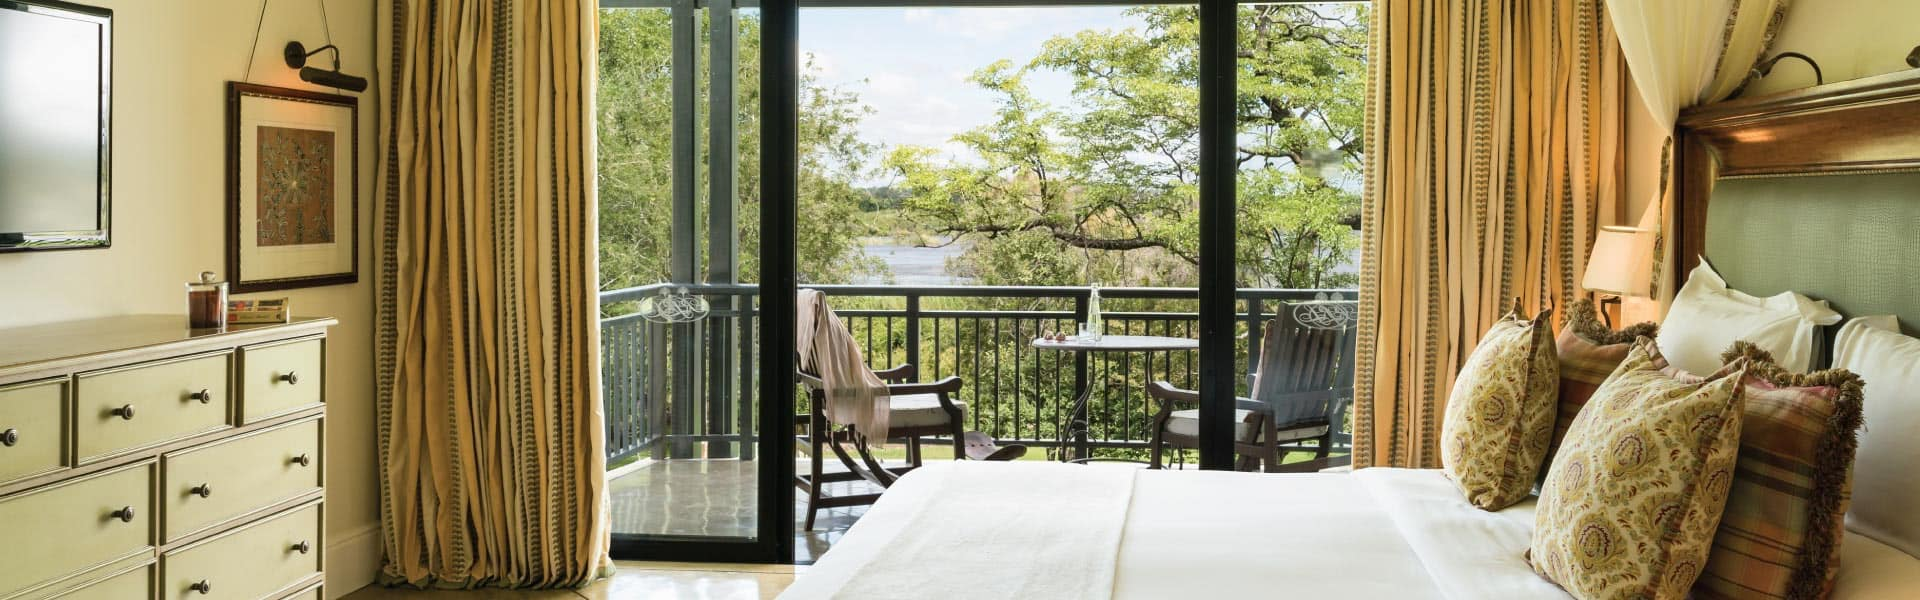 Livingstone Hotel | Official Site Royal Livingstone Victoria Falls